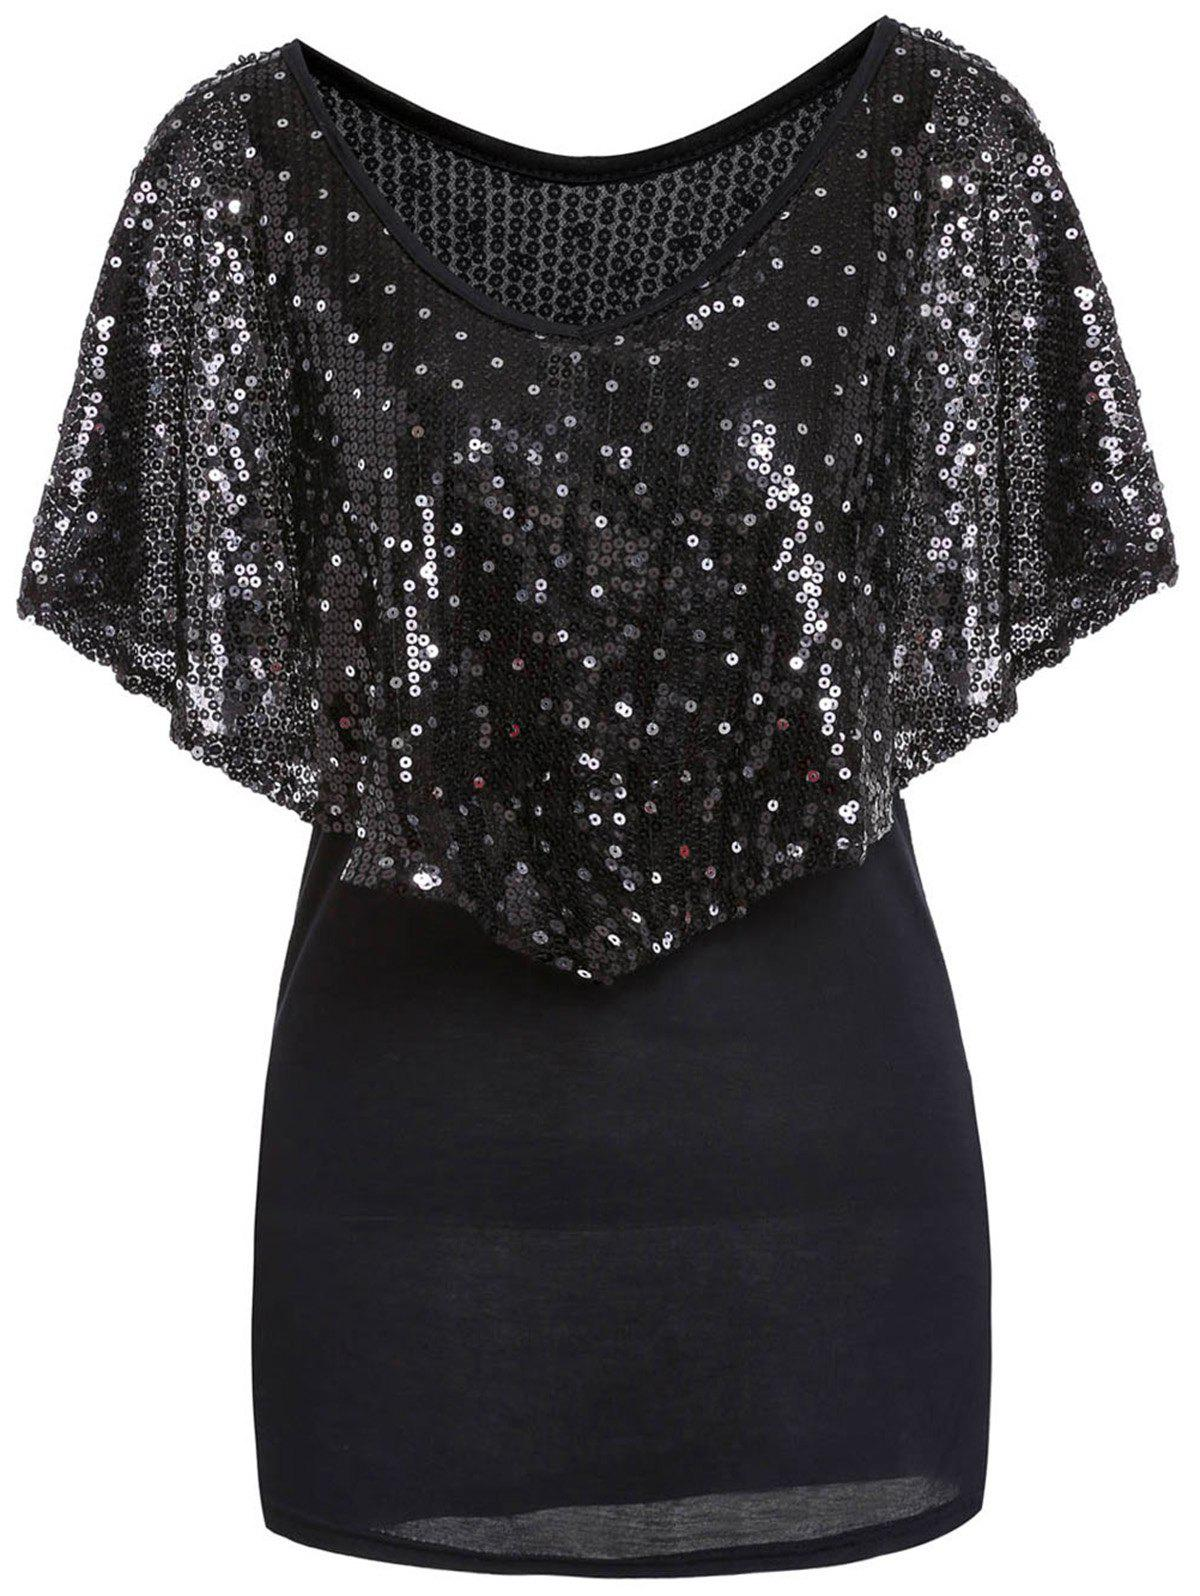 Fashionable V-Neck Sequins Embellished Short Sleeve T-Shirt For Women